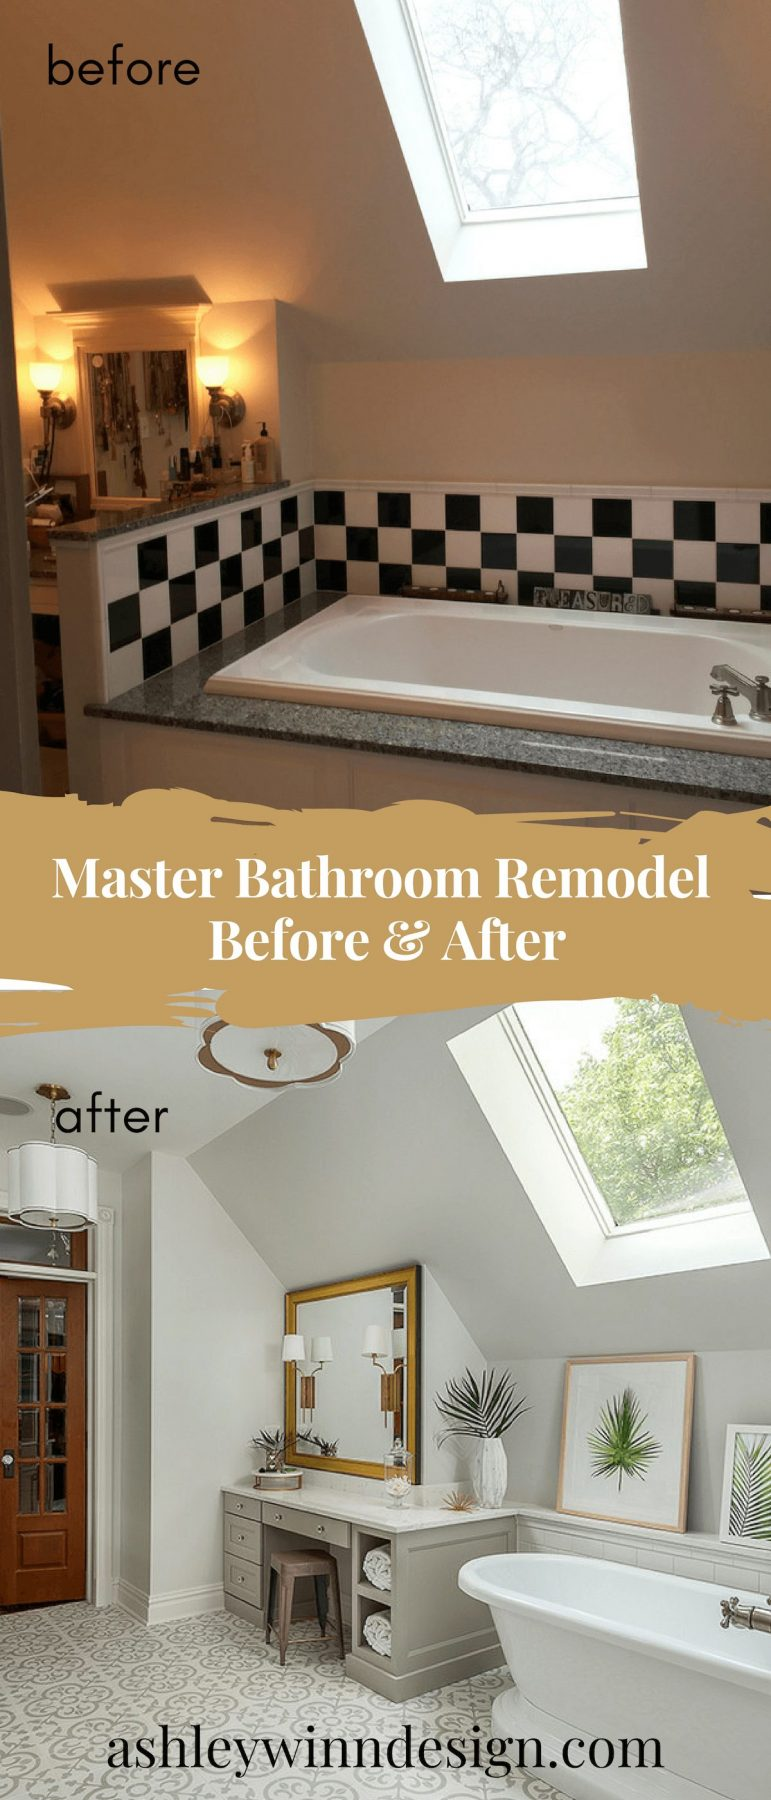 30 Impressive Master Bathroom Remodel Ideas Before After Images